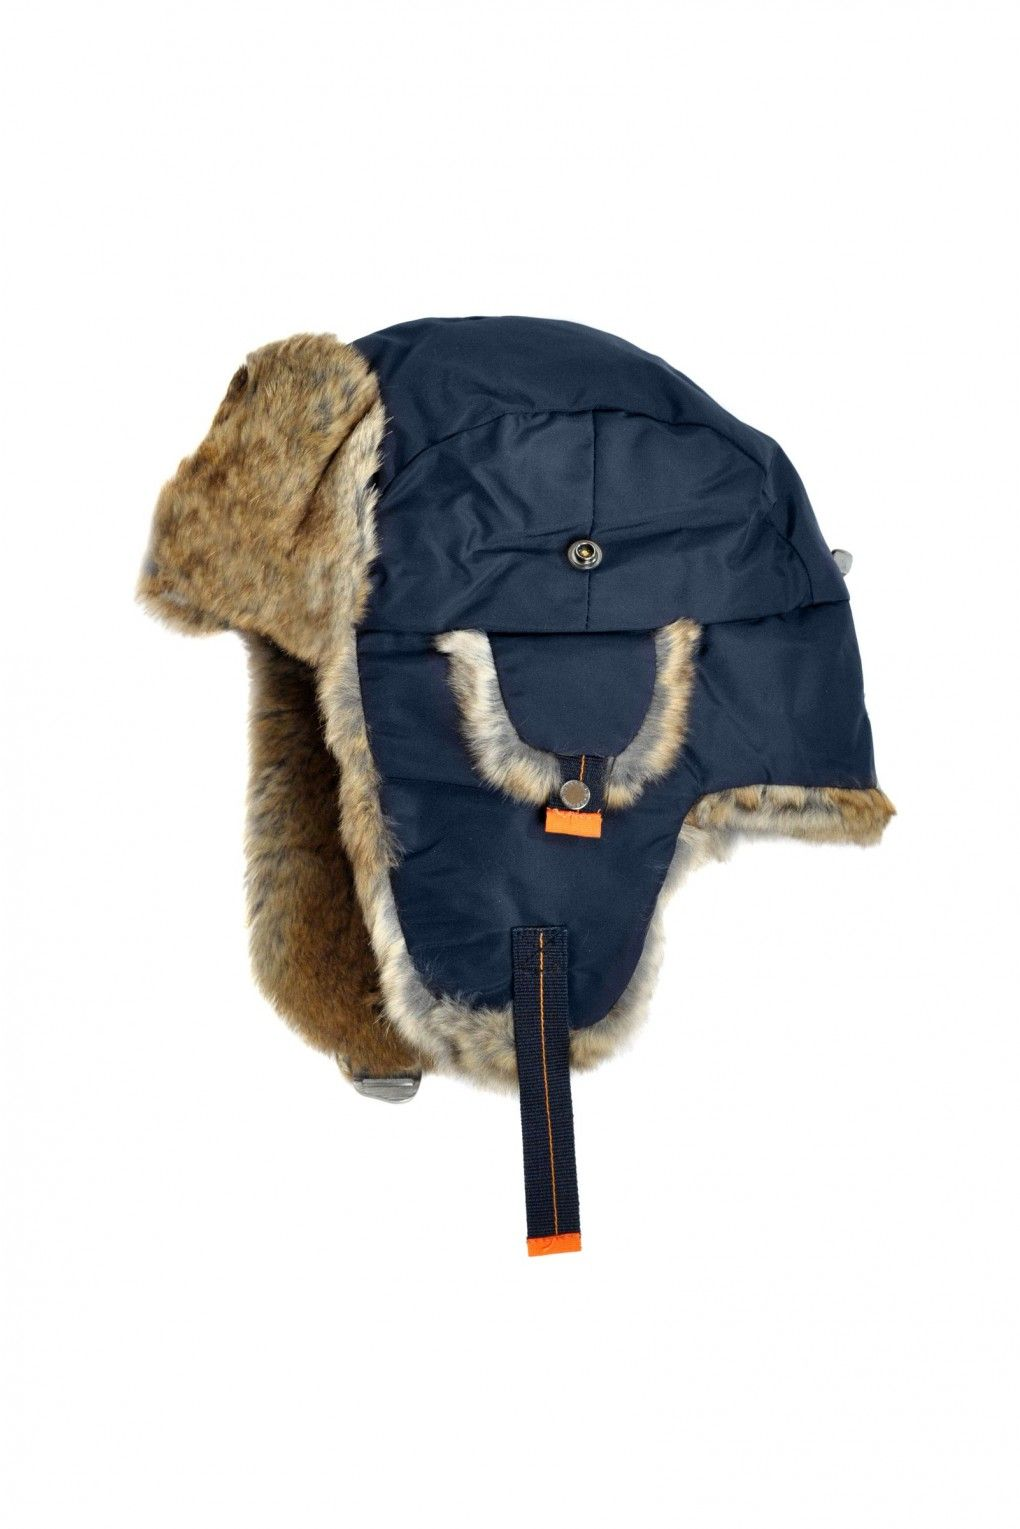 parajumpers winter hat